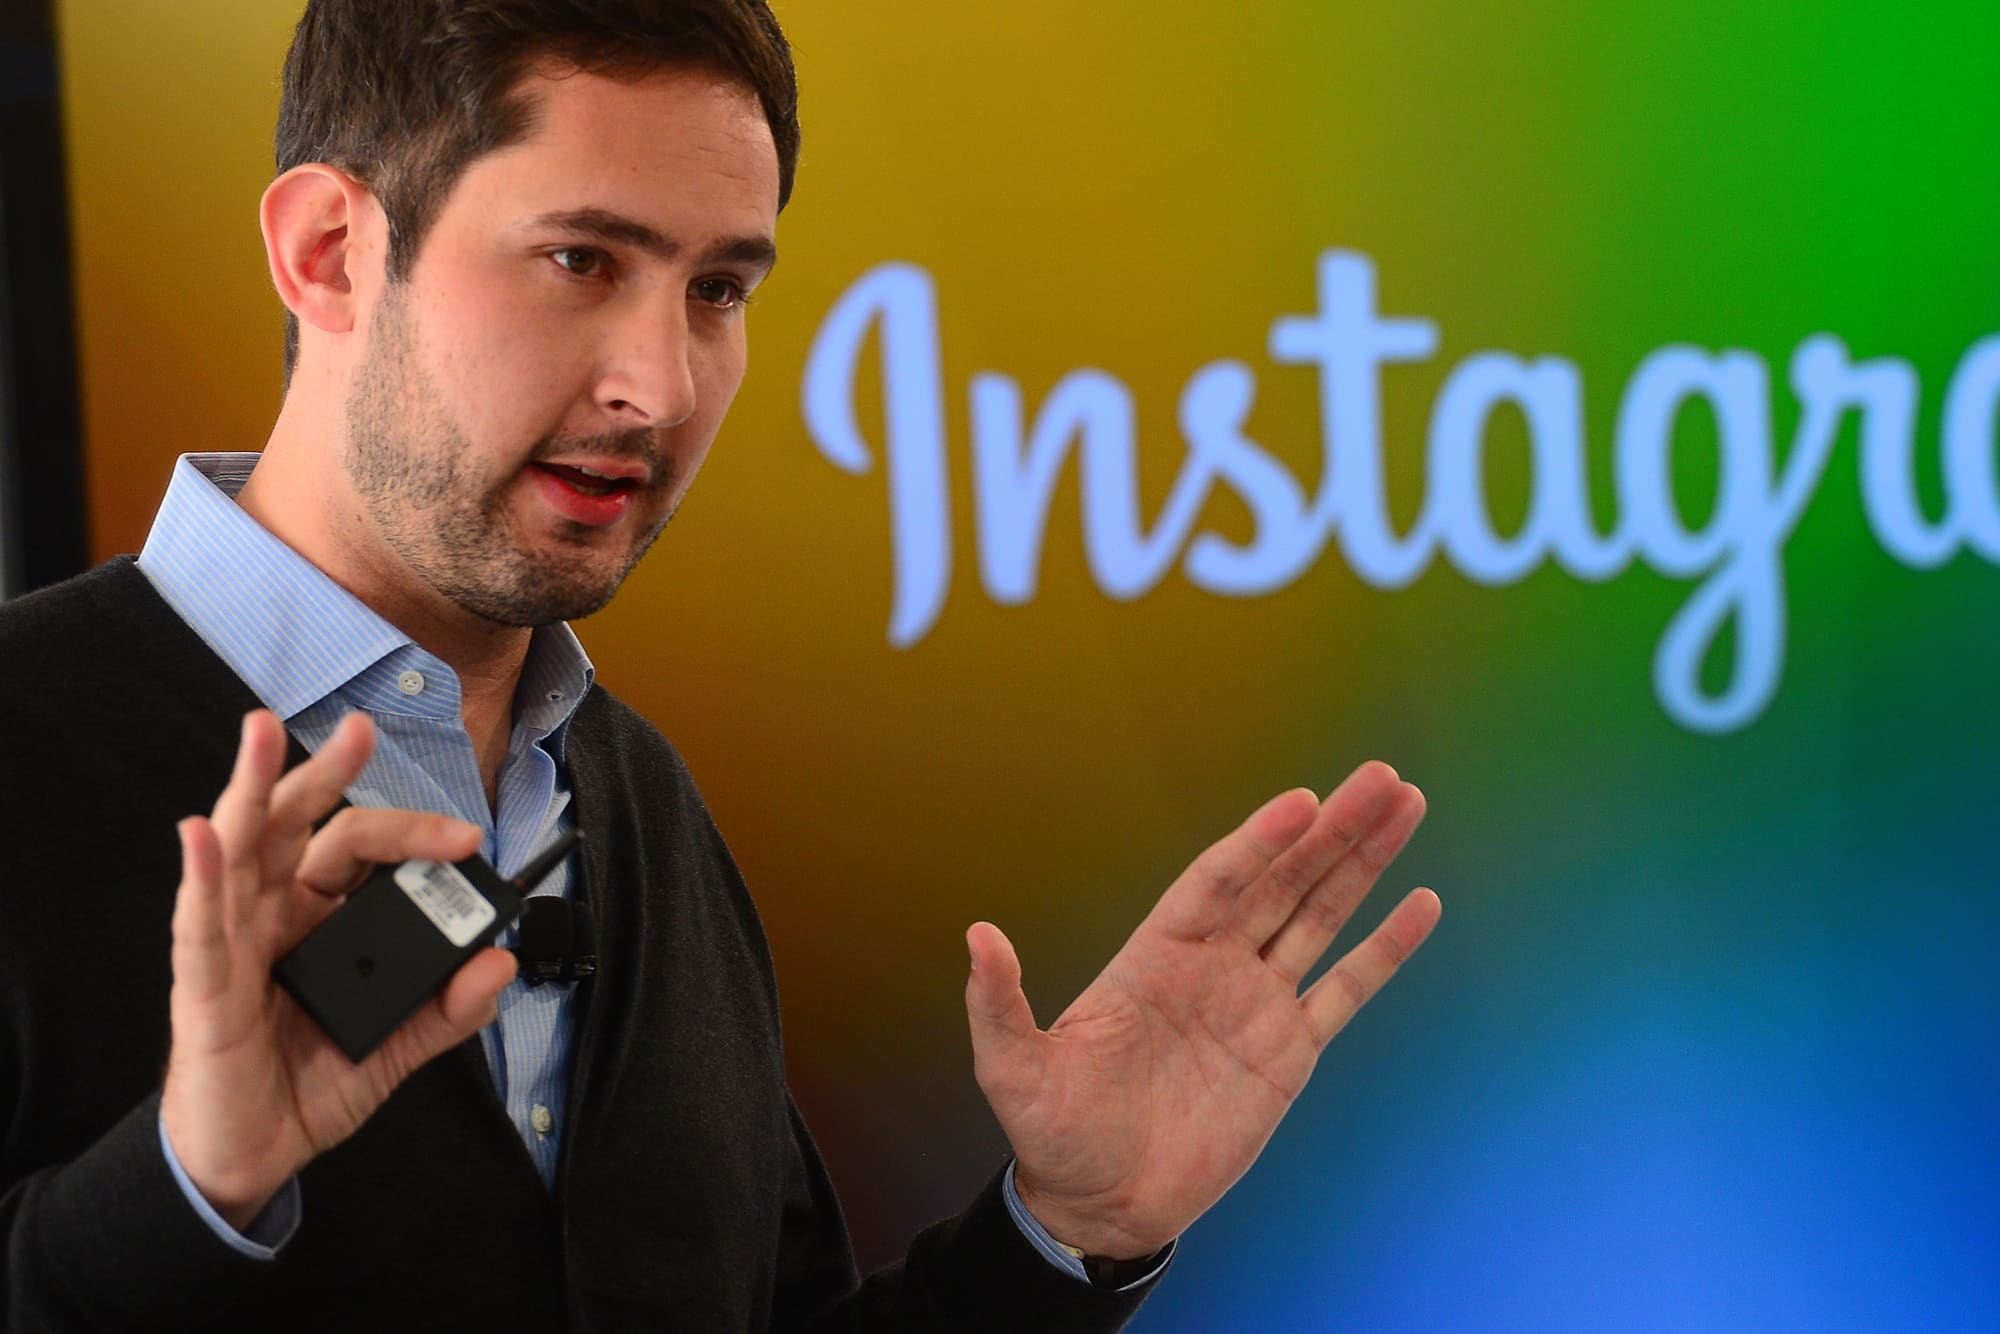 As calls grow to split up Facebook, employees who were there for the Instagram acquisition explain why the deal happened